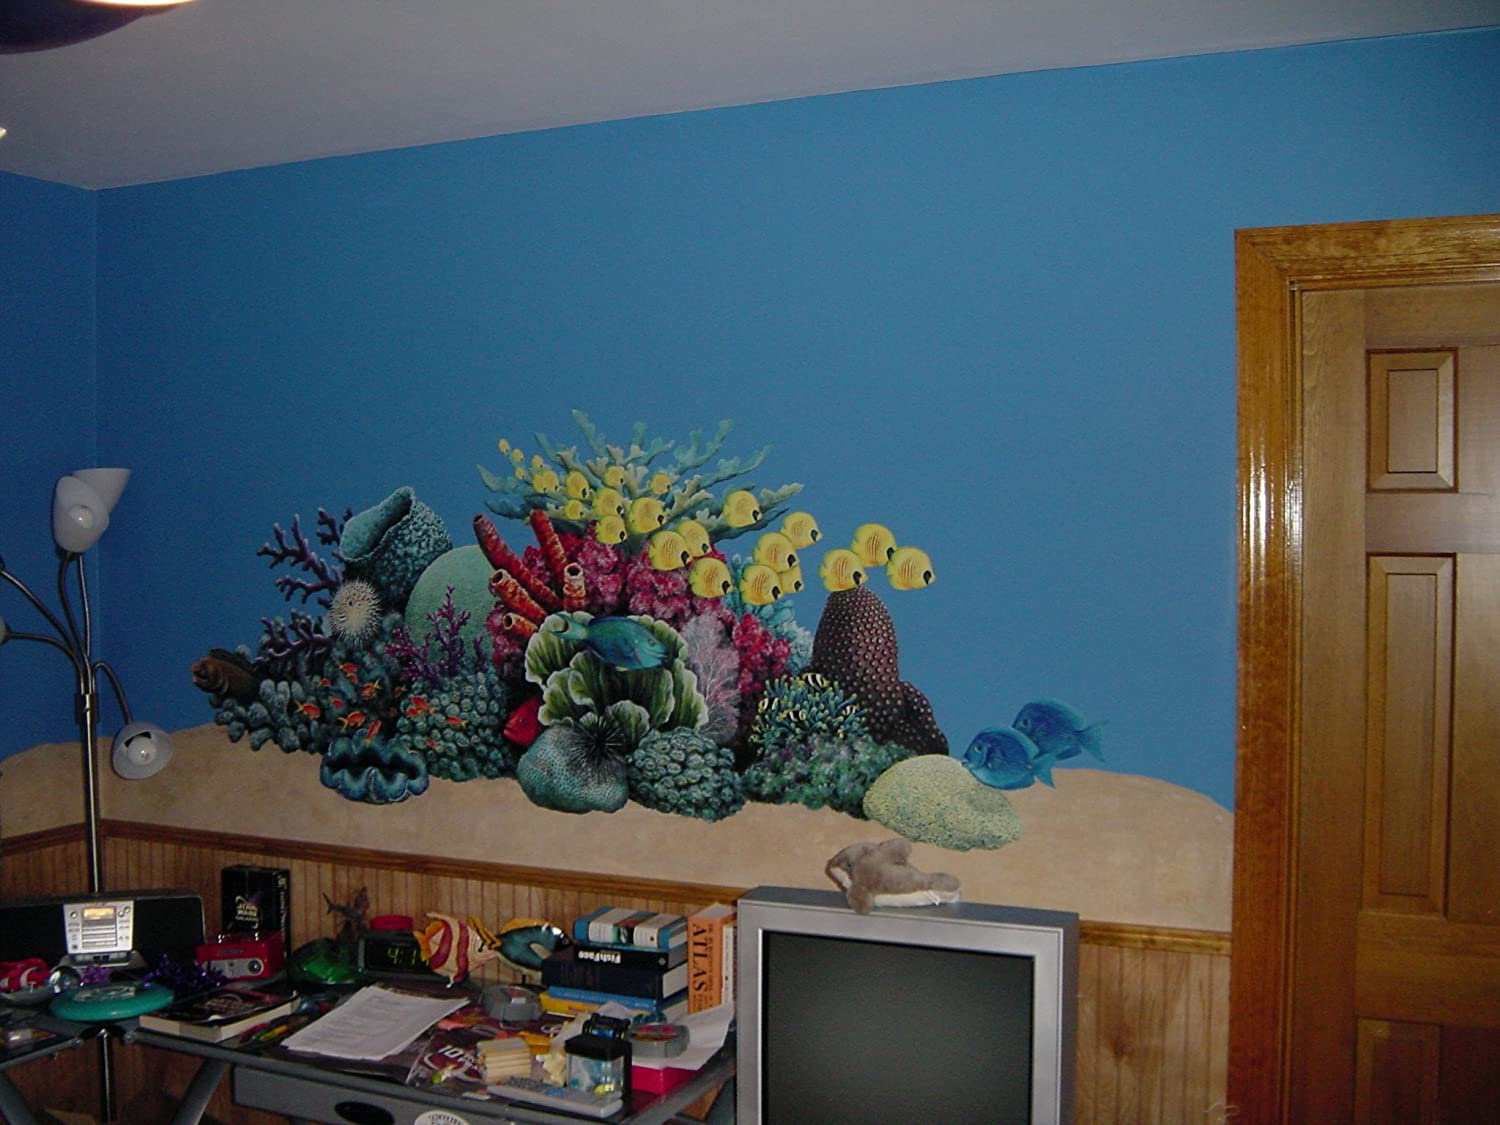 Amazon.com: Walls of the Wild 31508 Coral Reef Wall Decal Sticker ...